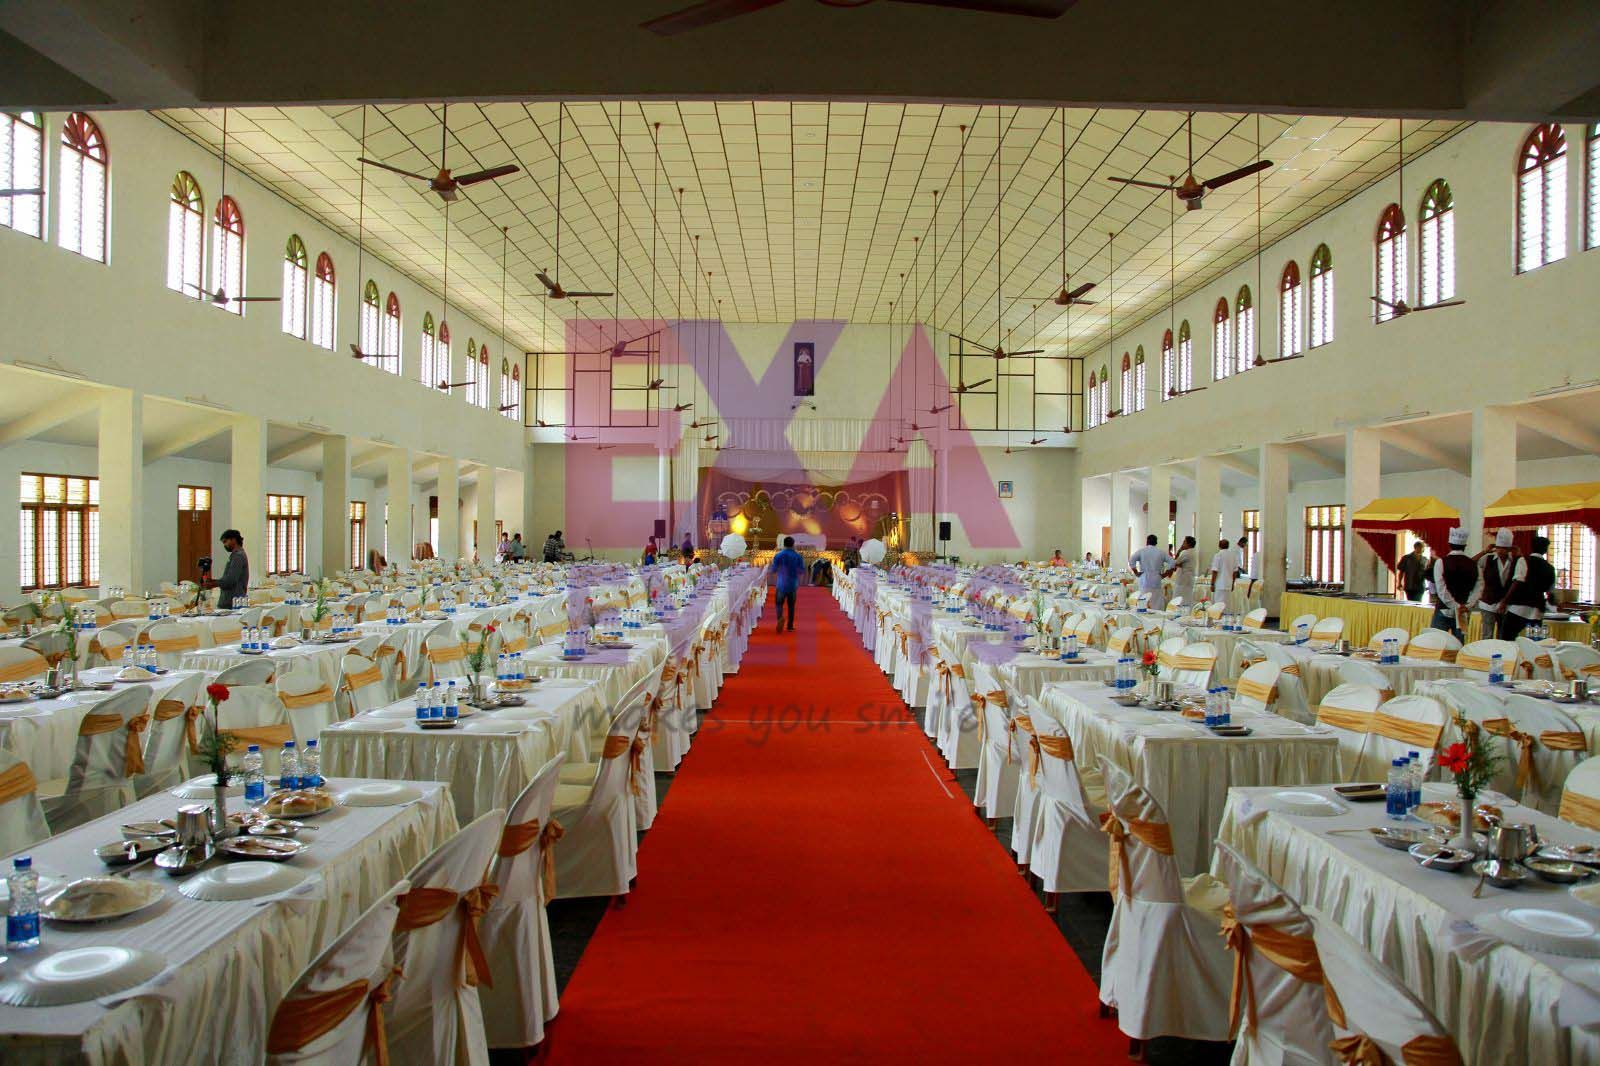 Wedding event videography service in kottayam wedding plans best wedding planner in kottayam event management ettumanoorkottayam event management agency and wedding planner in kottayam junglespirit Gallery